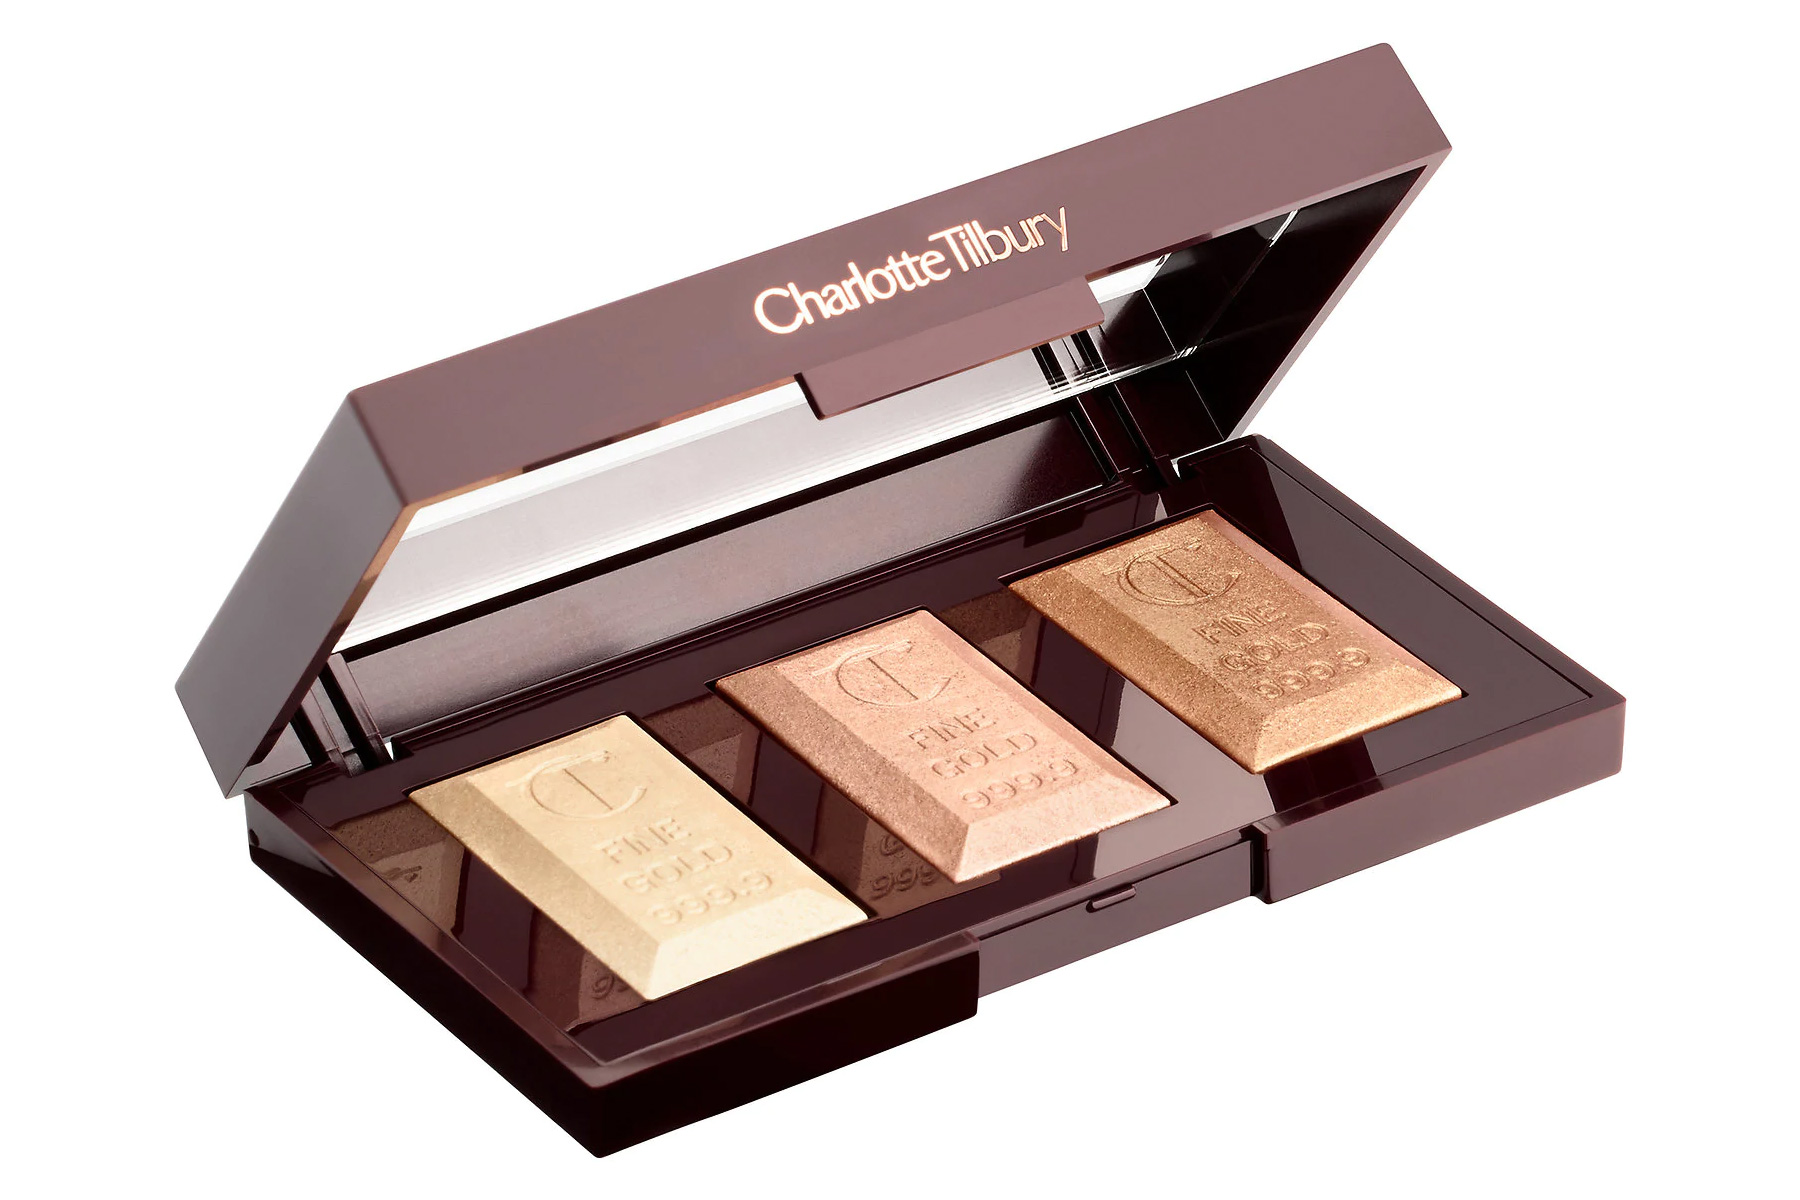 Charlotte-tilbury-Bar-of-gold-palette